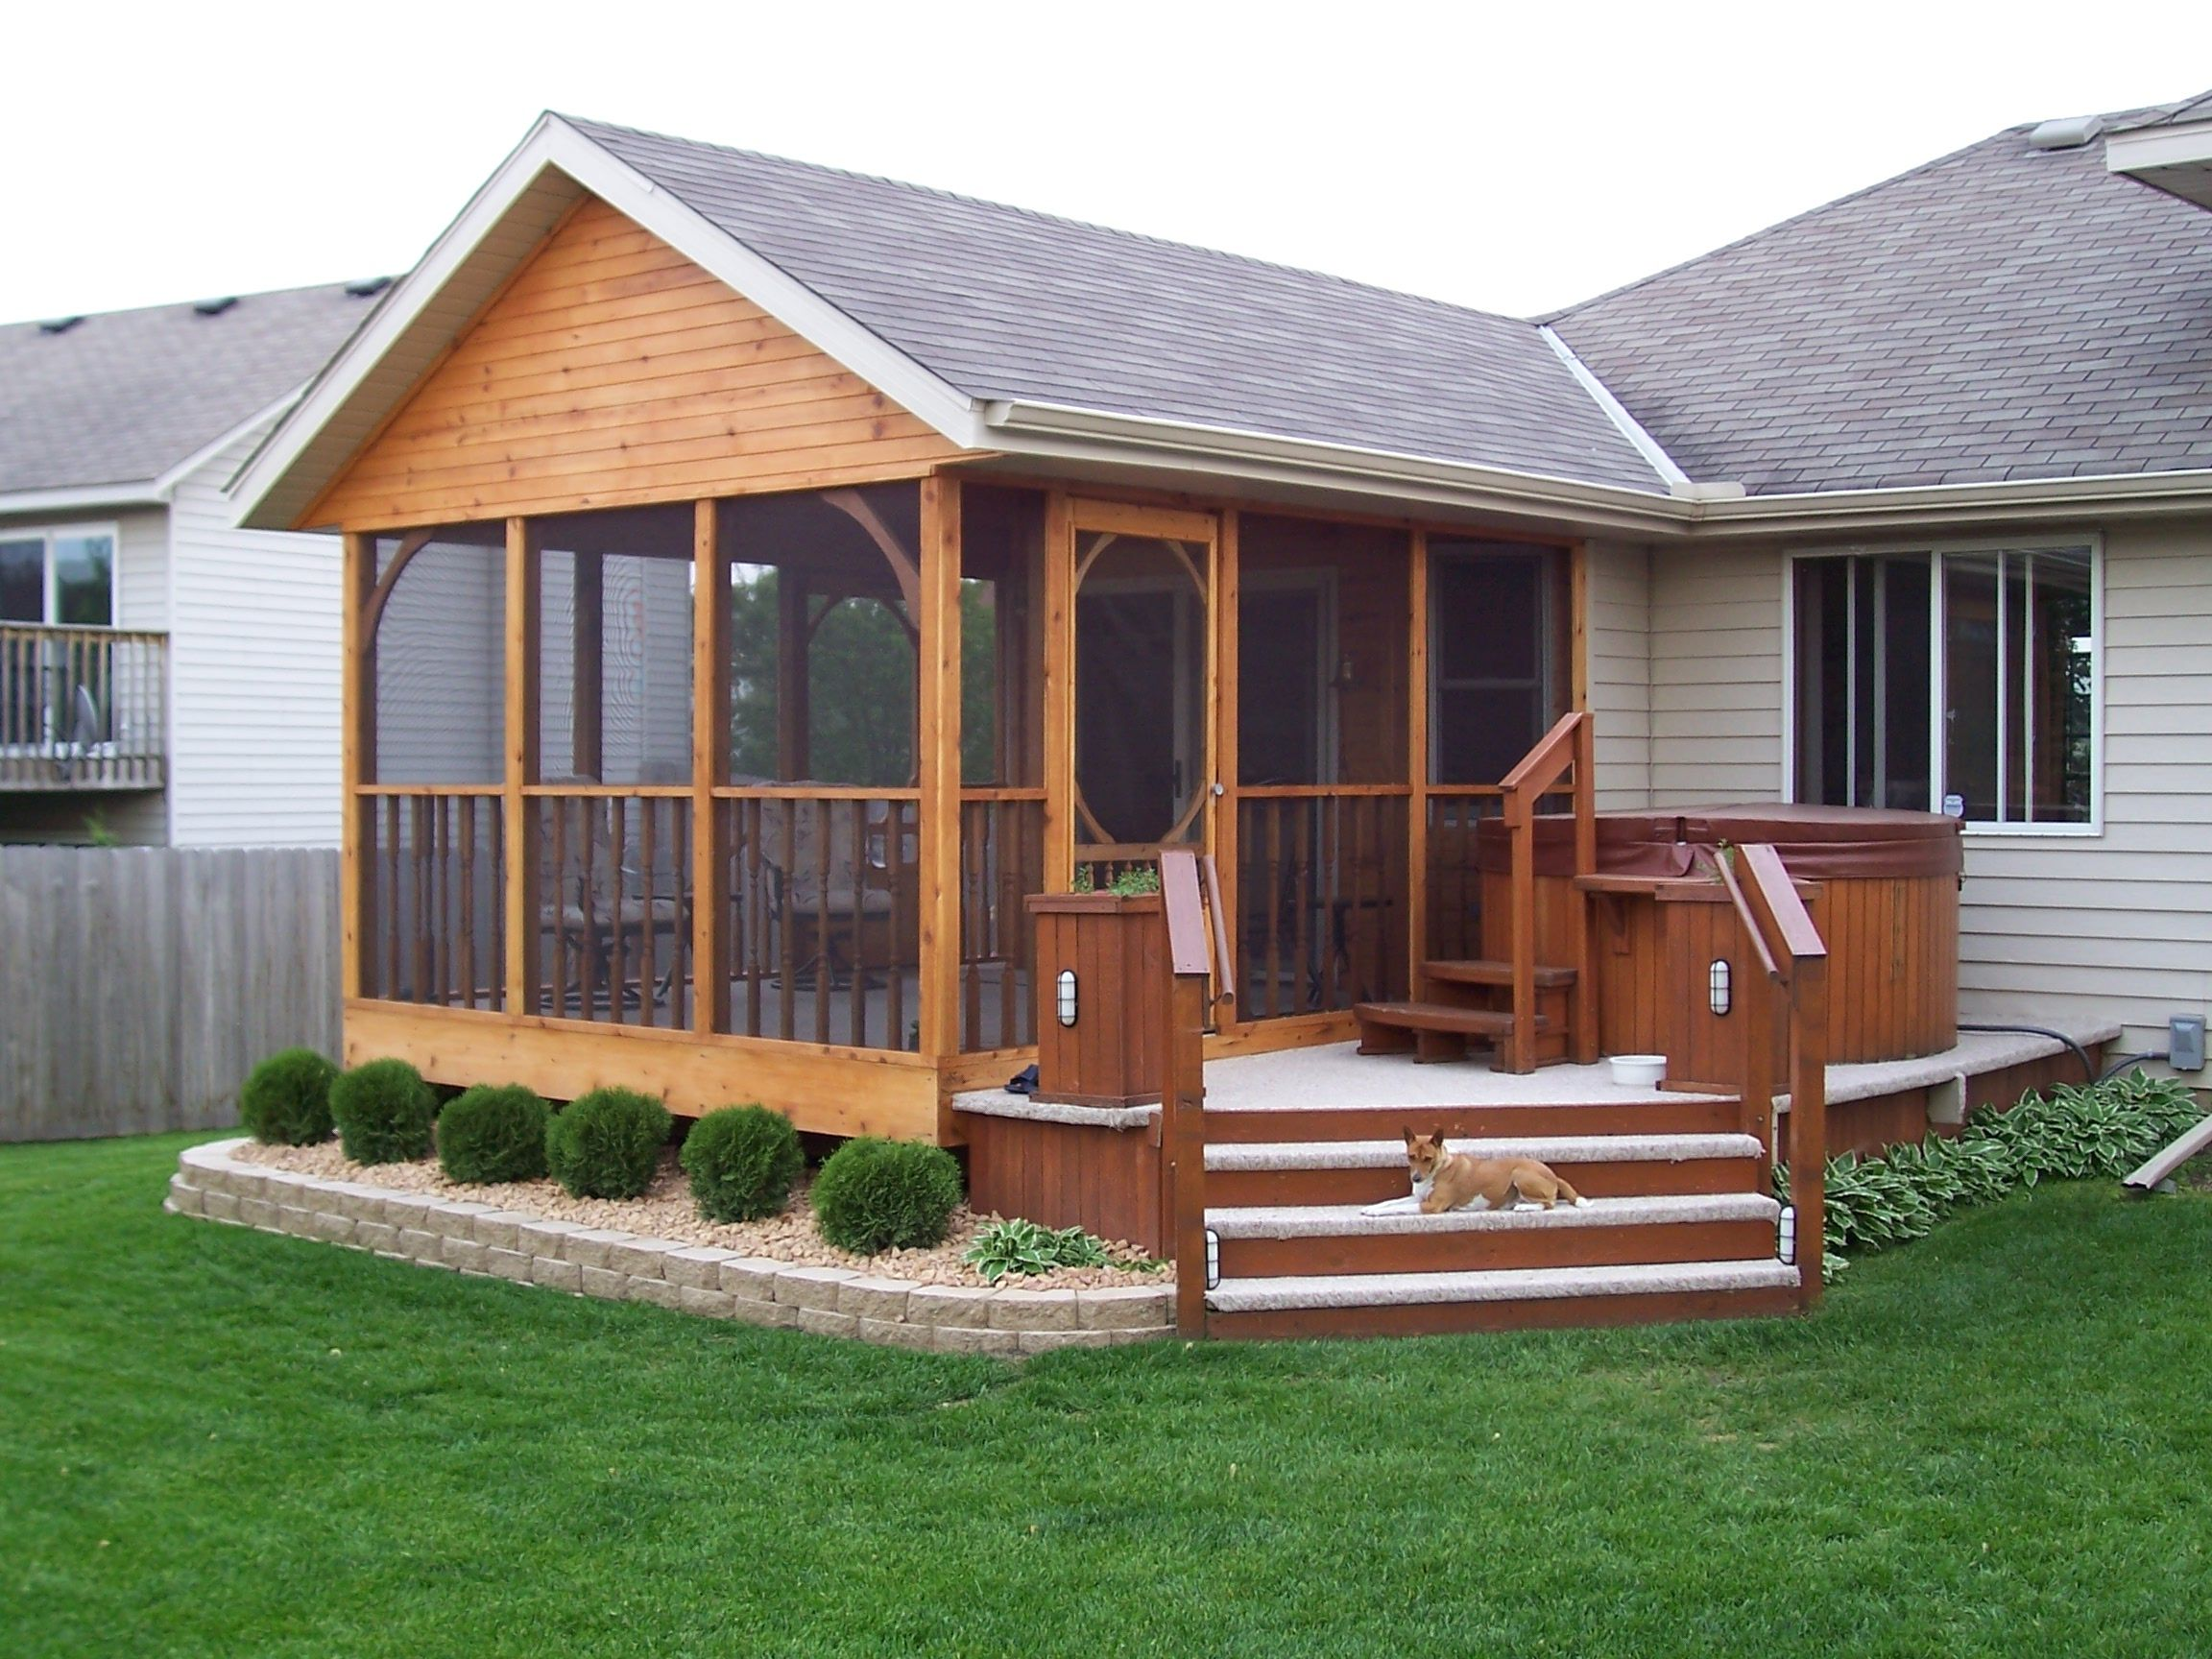 Love The Deck Added On Needs Some Paint On The Porch